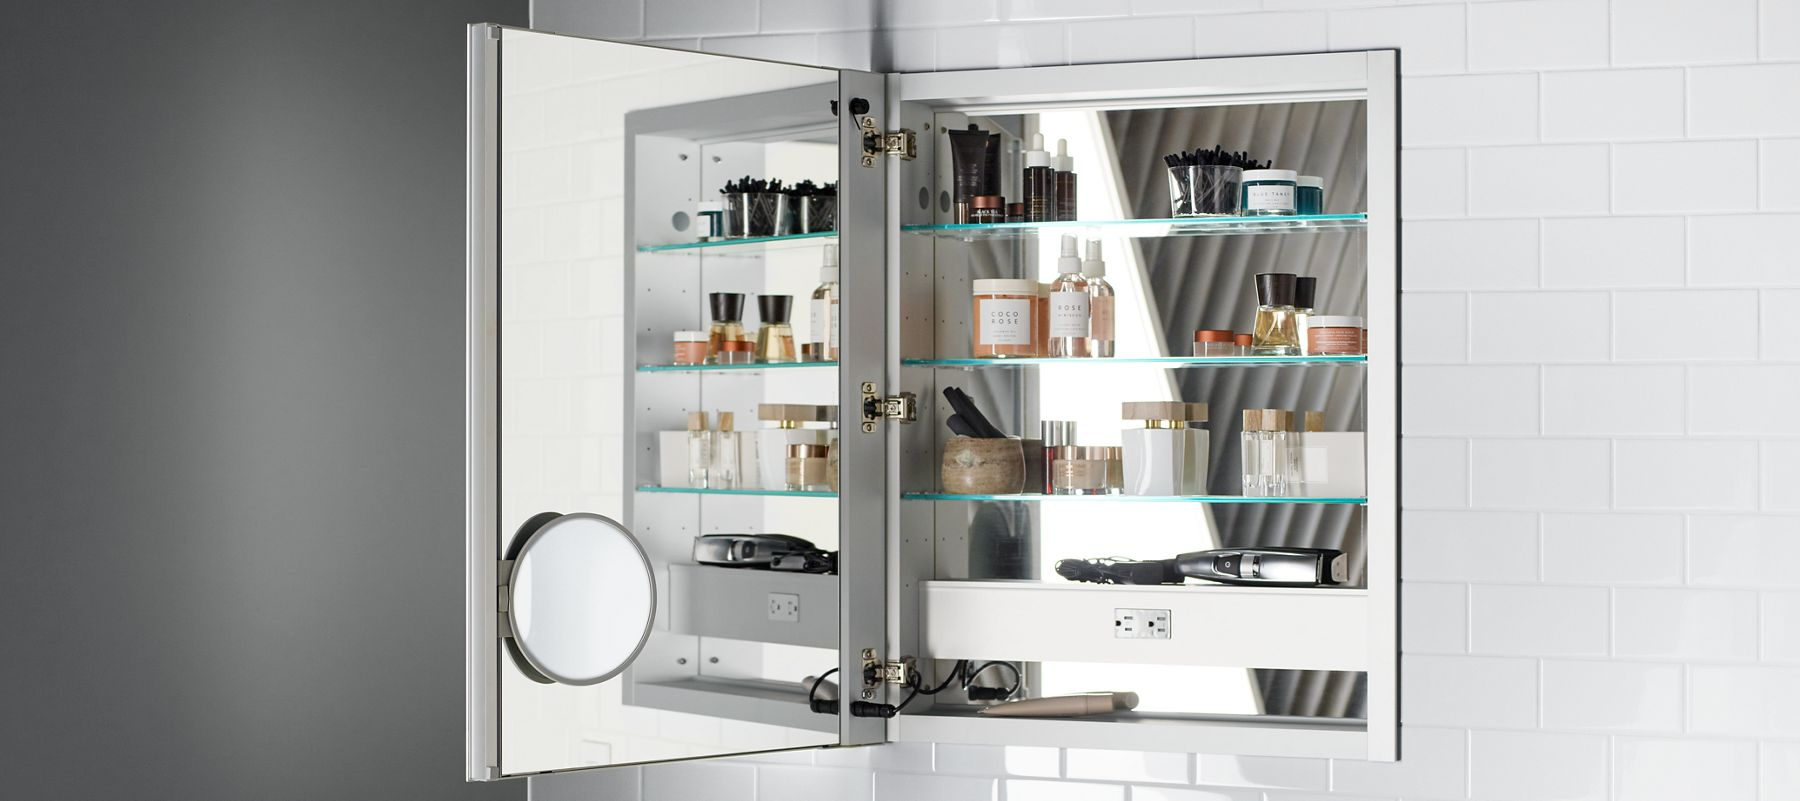 full replacing guide shelving cabinet corner short door storage medicine open img size lighted after with recessed shelf double bathroom replace of replacement lights shelves mirror air delightful